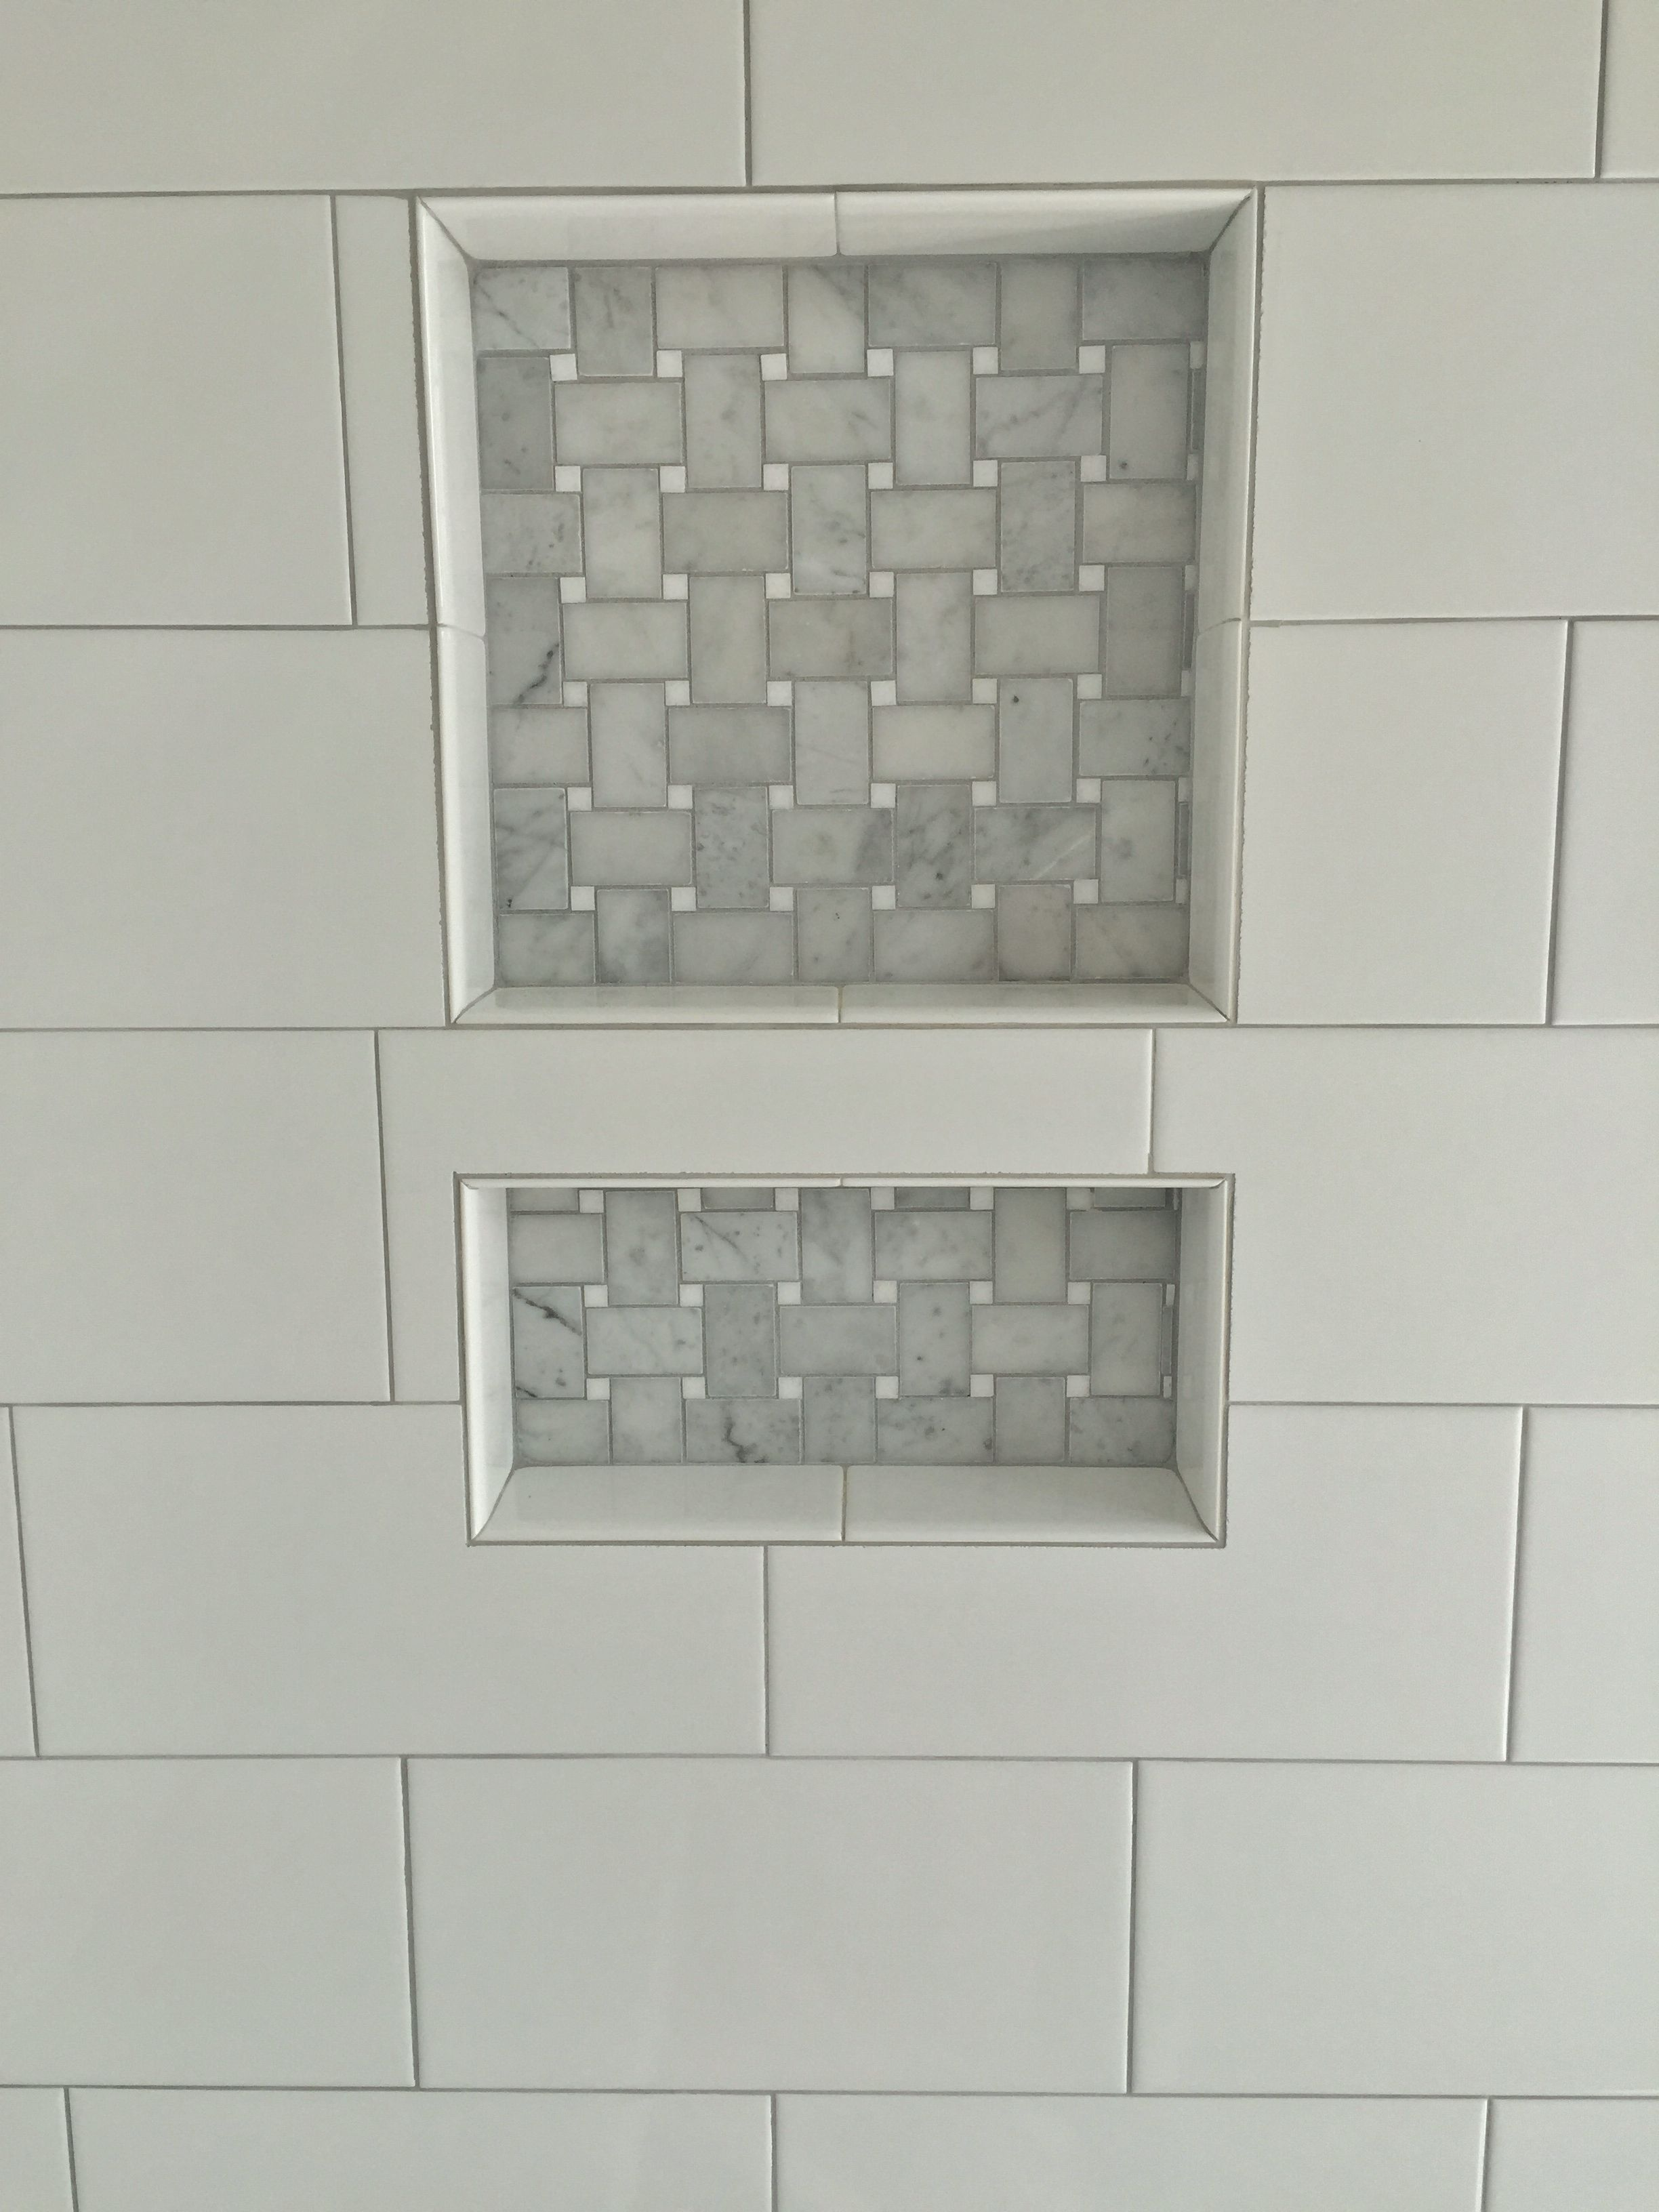 6x12 White Porcelain Tile With Stone Basketweave Accent In Niche